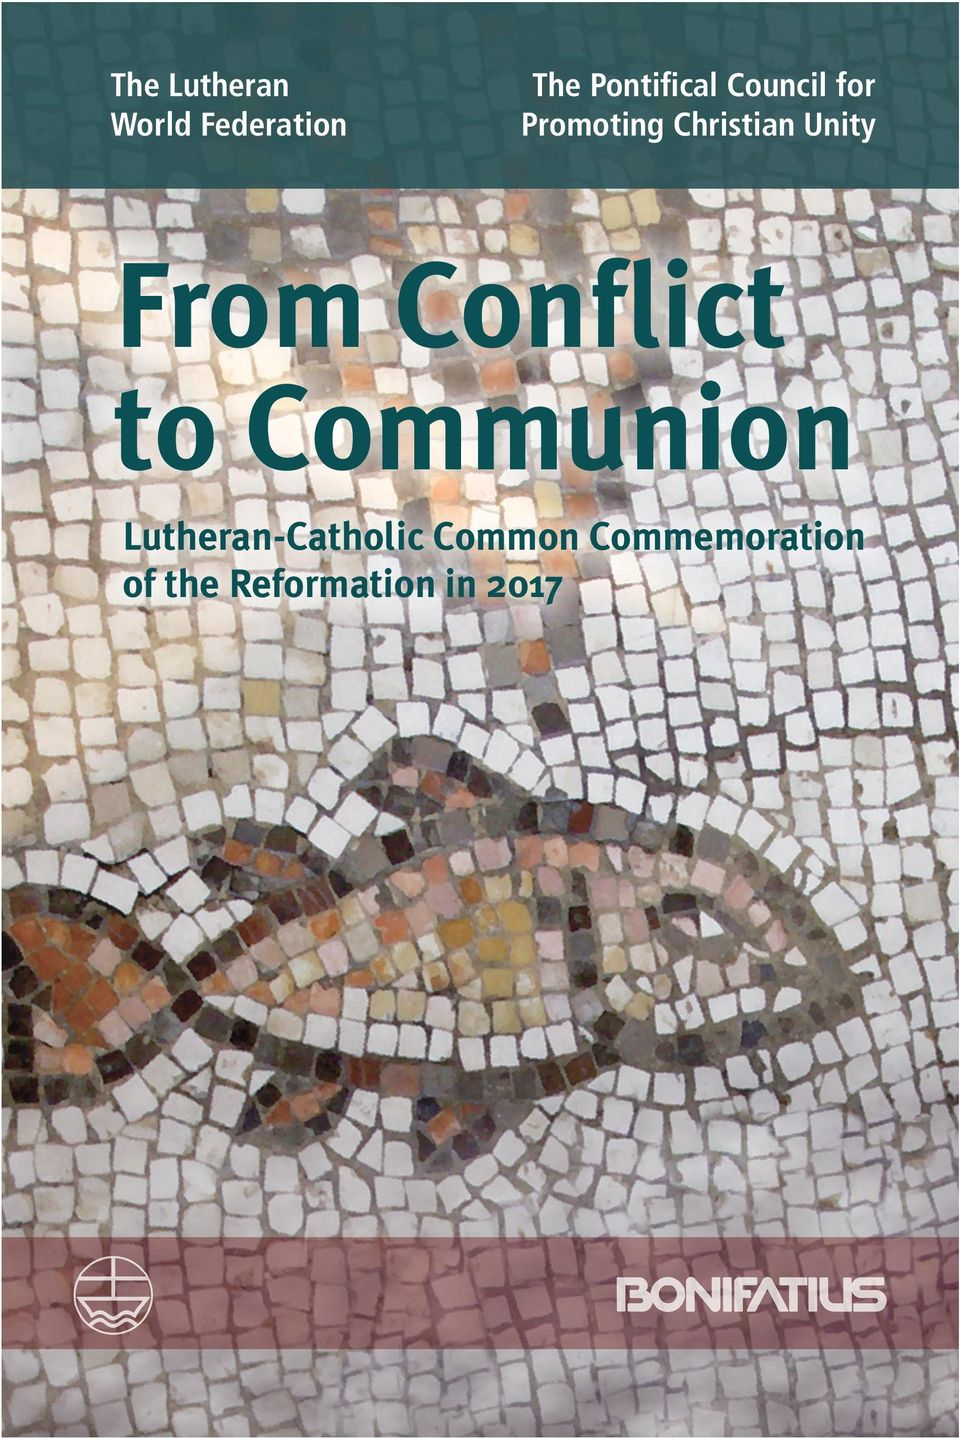 This encourages Lutherans and Catholics to celebrate together the common witness to the Gospel of Jesus Christ, who is the center of their common faith.